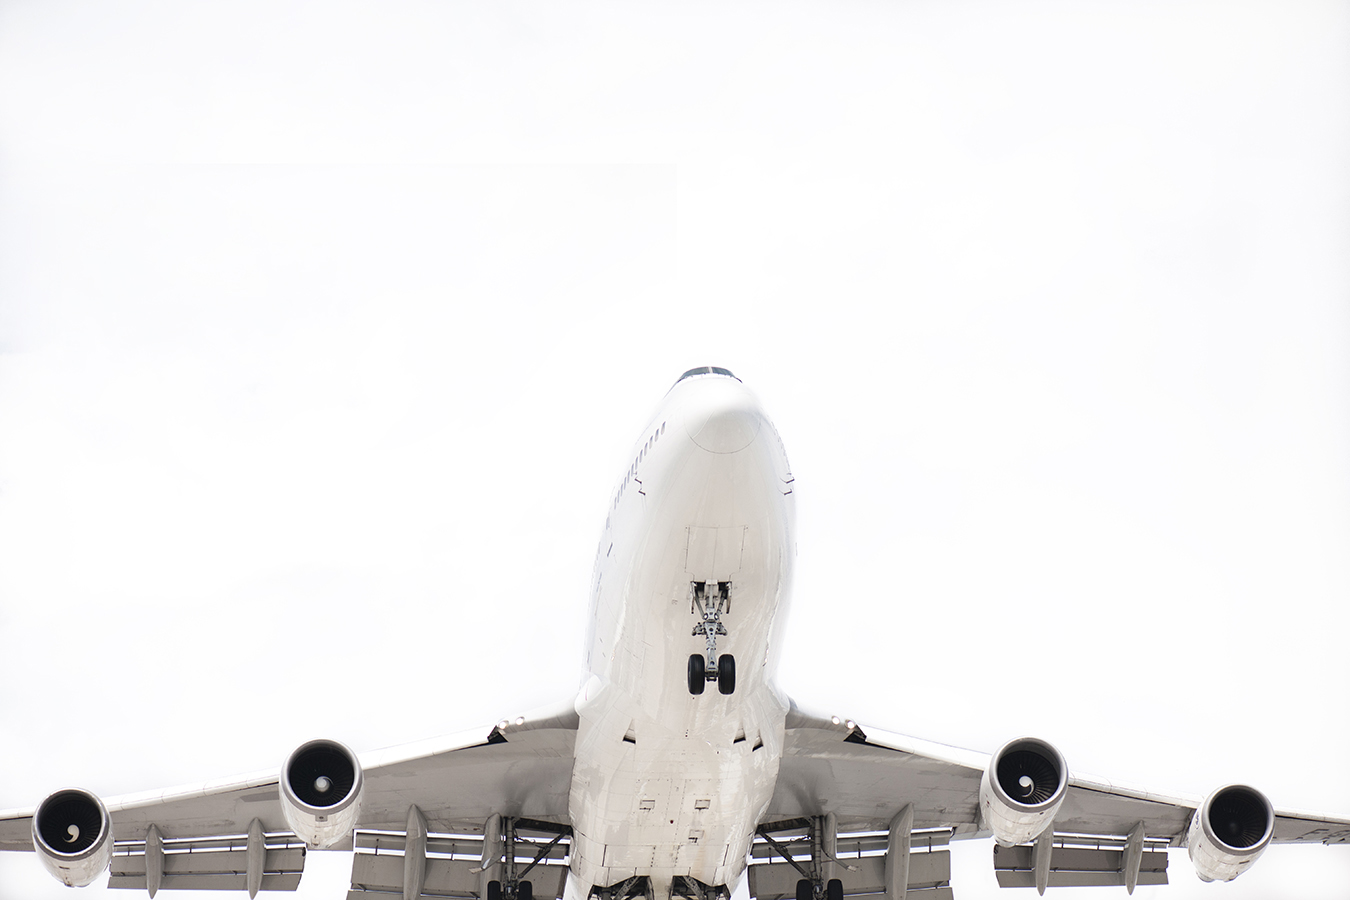 The Laird Co Air France 747 white nose wings aviation avgeek airplane airline photography for site.jpg